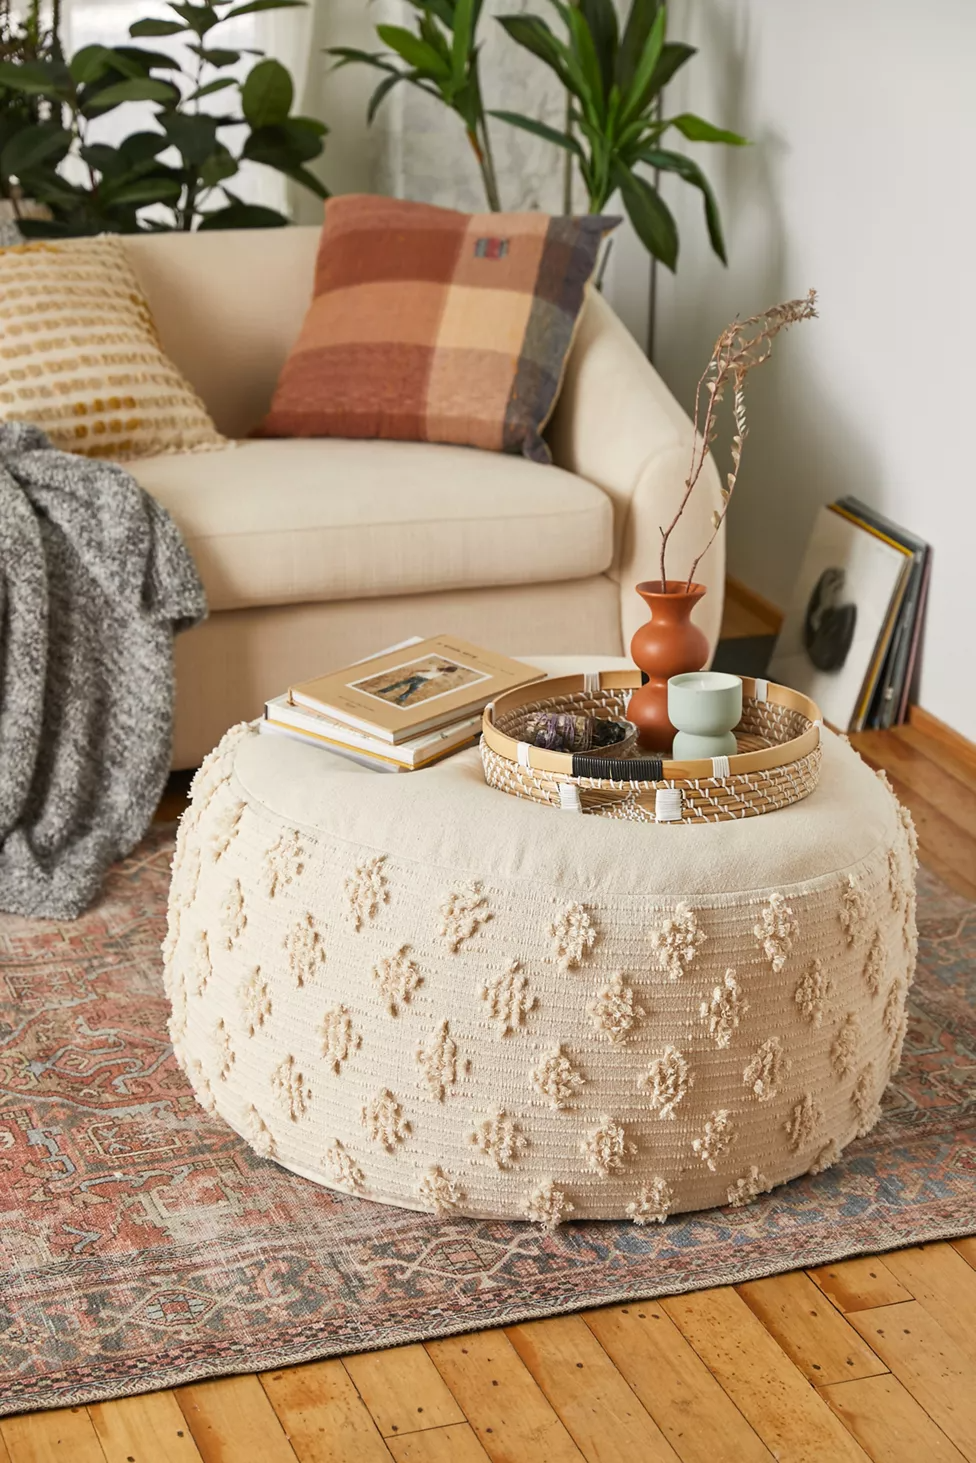 Runa Coffee Table Pouf Coffee Table Pouf Living Room Pouf Furniture Collections [ 1463 x 976 Pixel ]